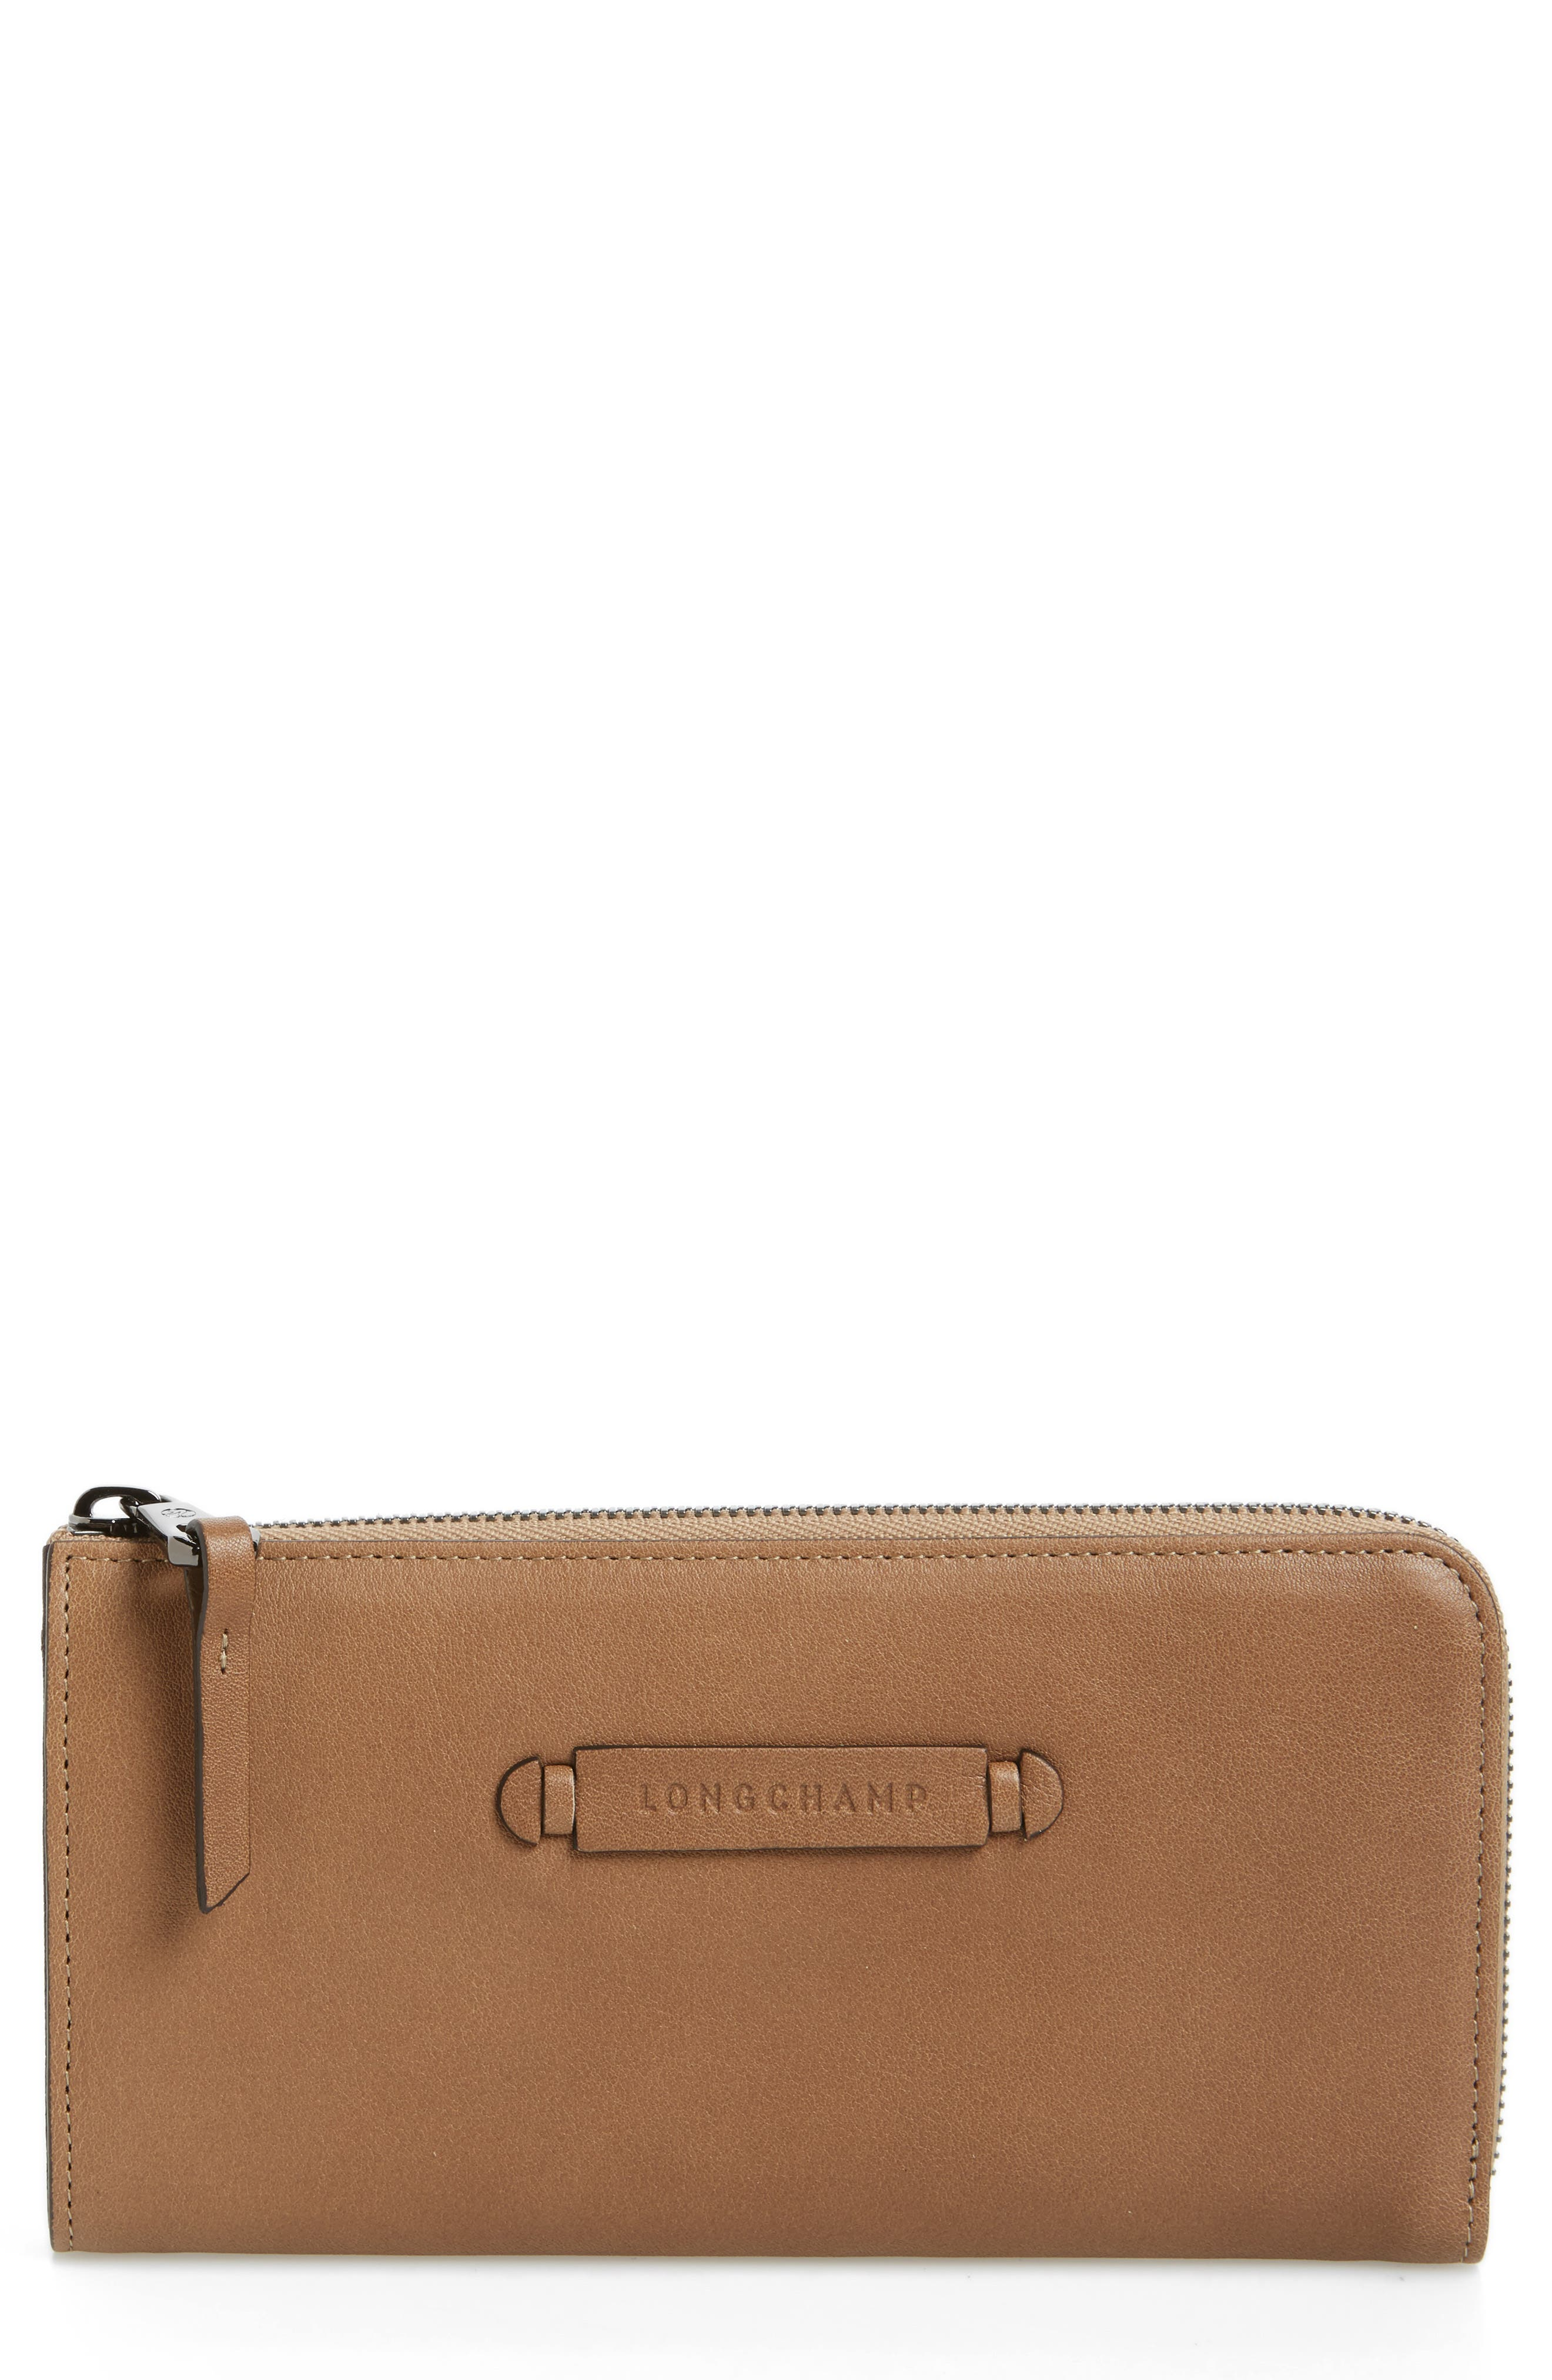 3D Leather Wallet,                         Main,                         color, Taupe